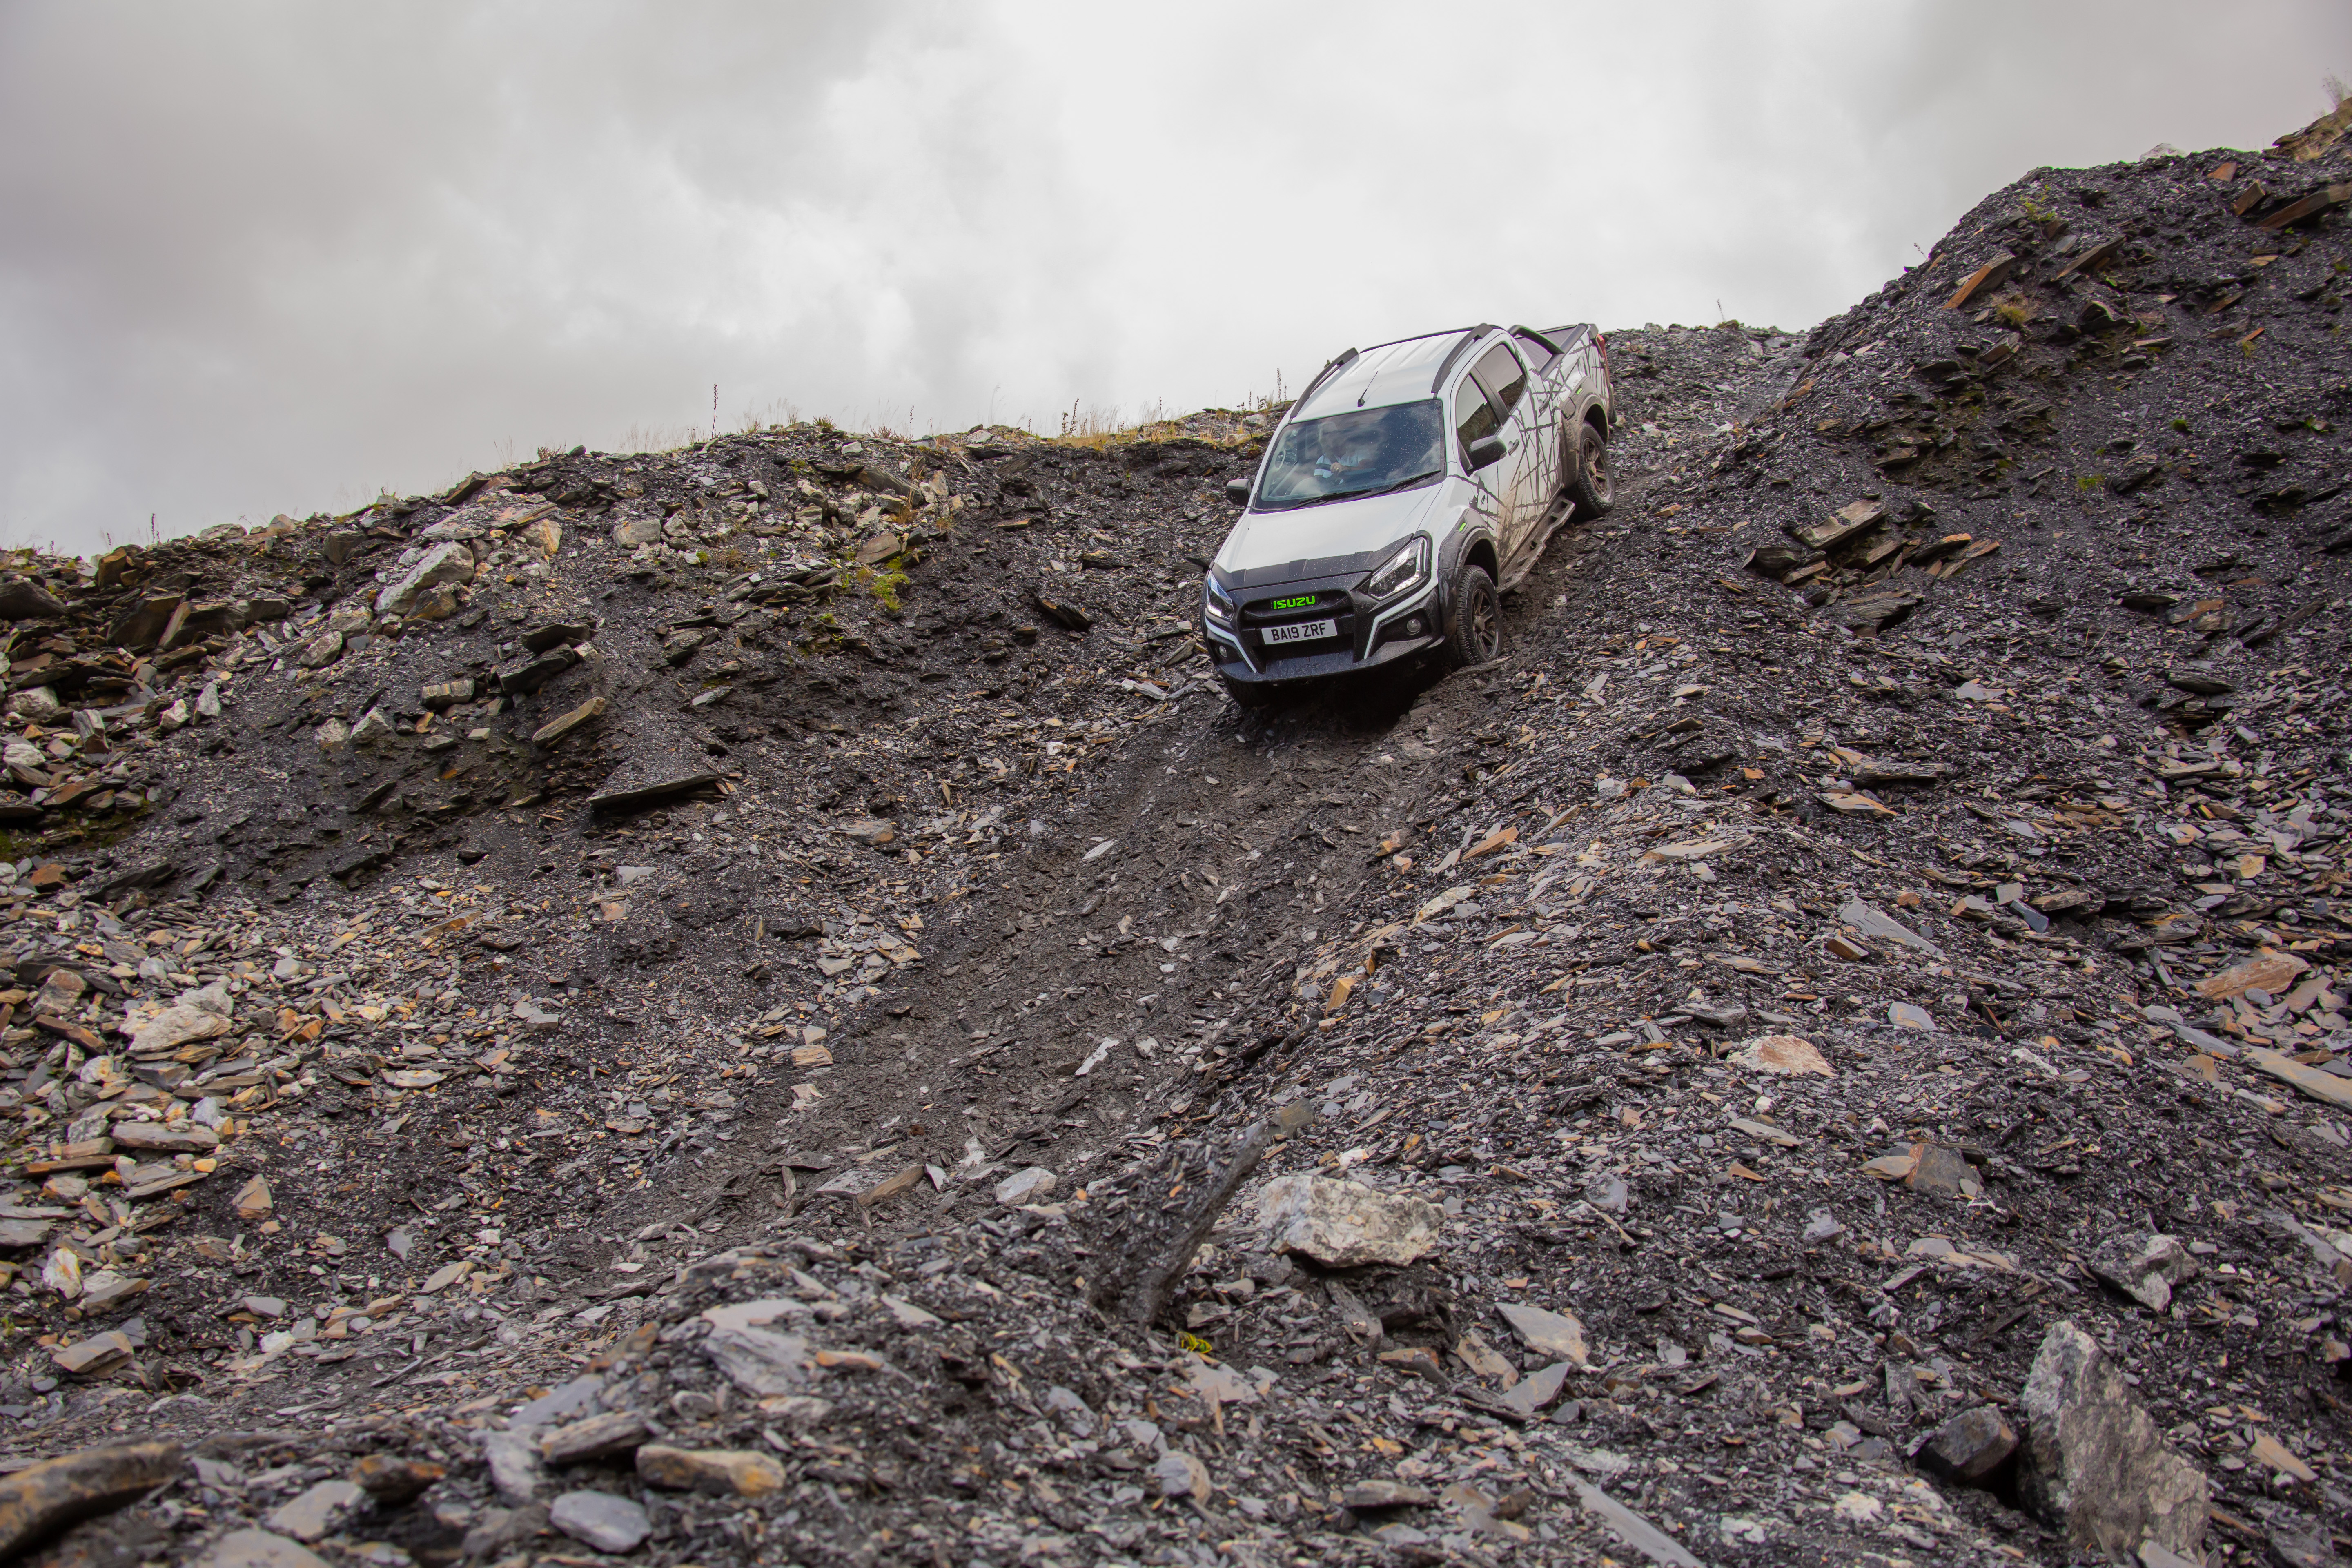 Steep inclines are no trouble in the D-Max